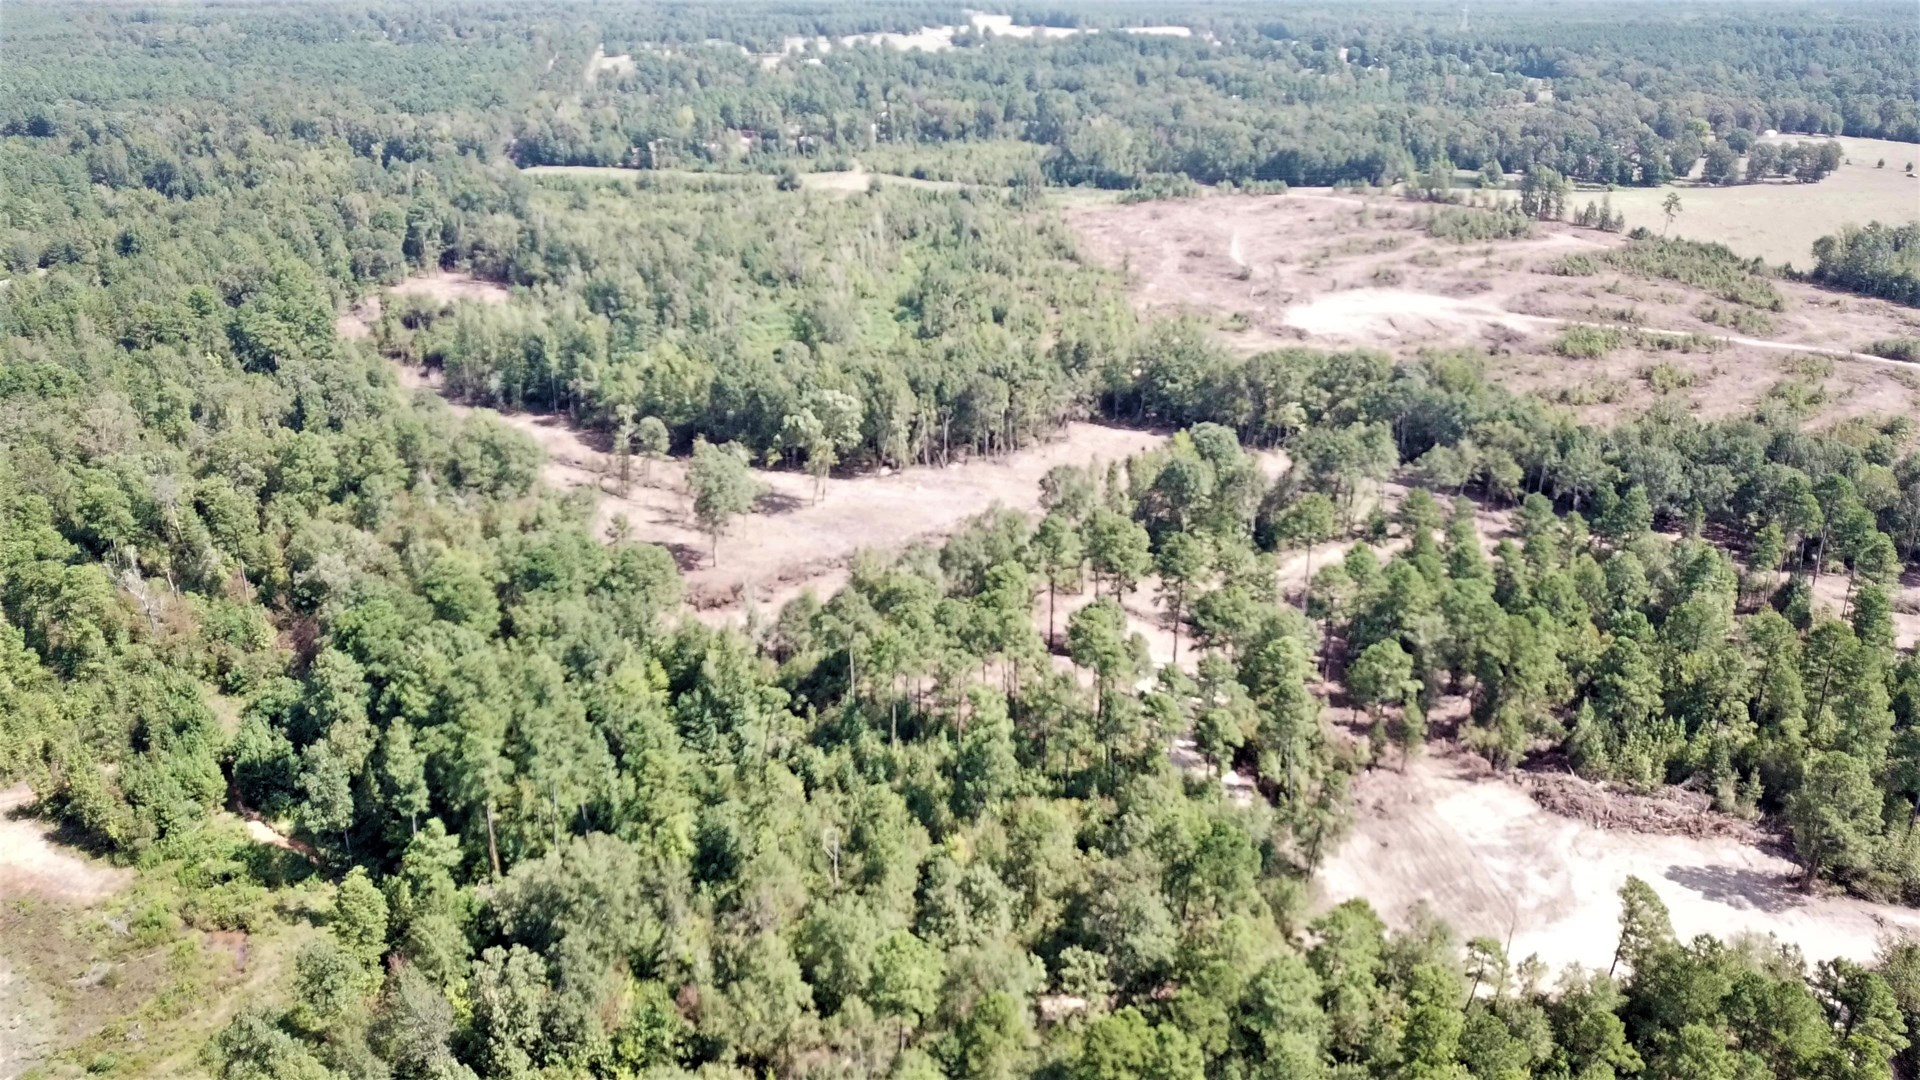 East Texas Land For Sale, Hunting, Recreation, Property